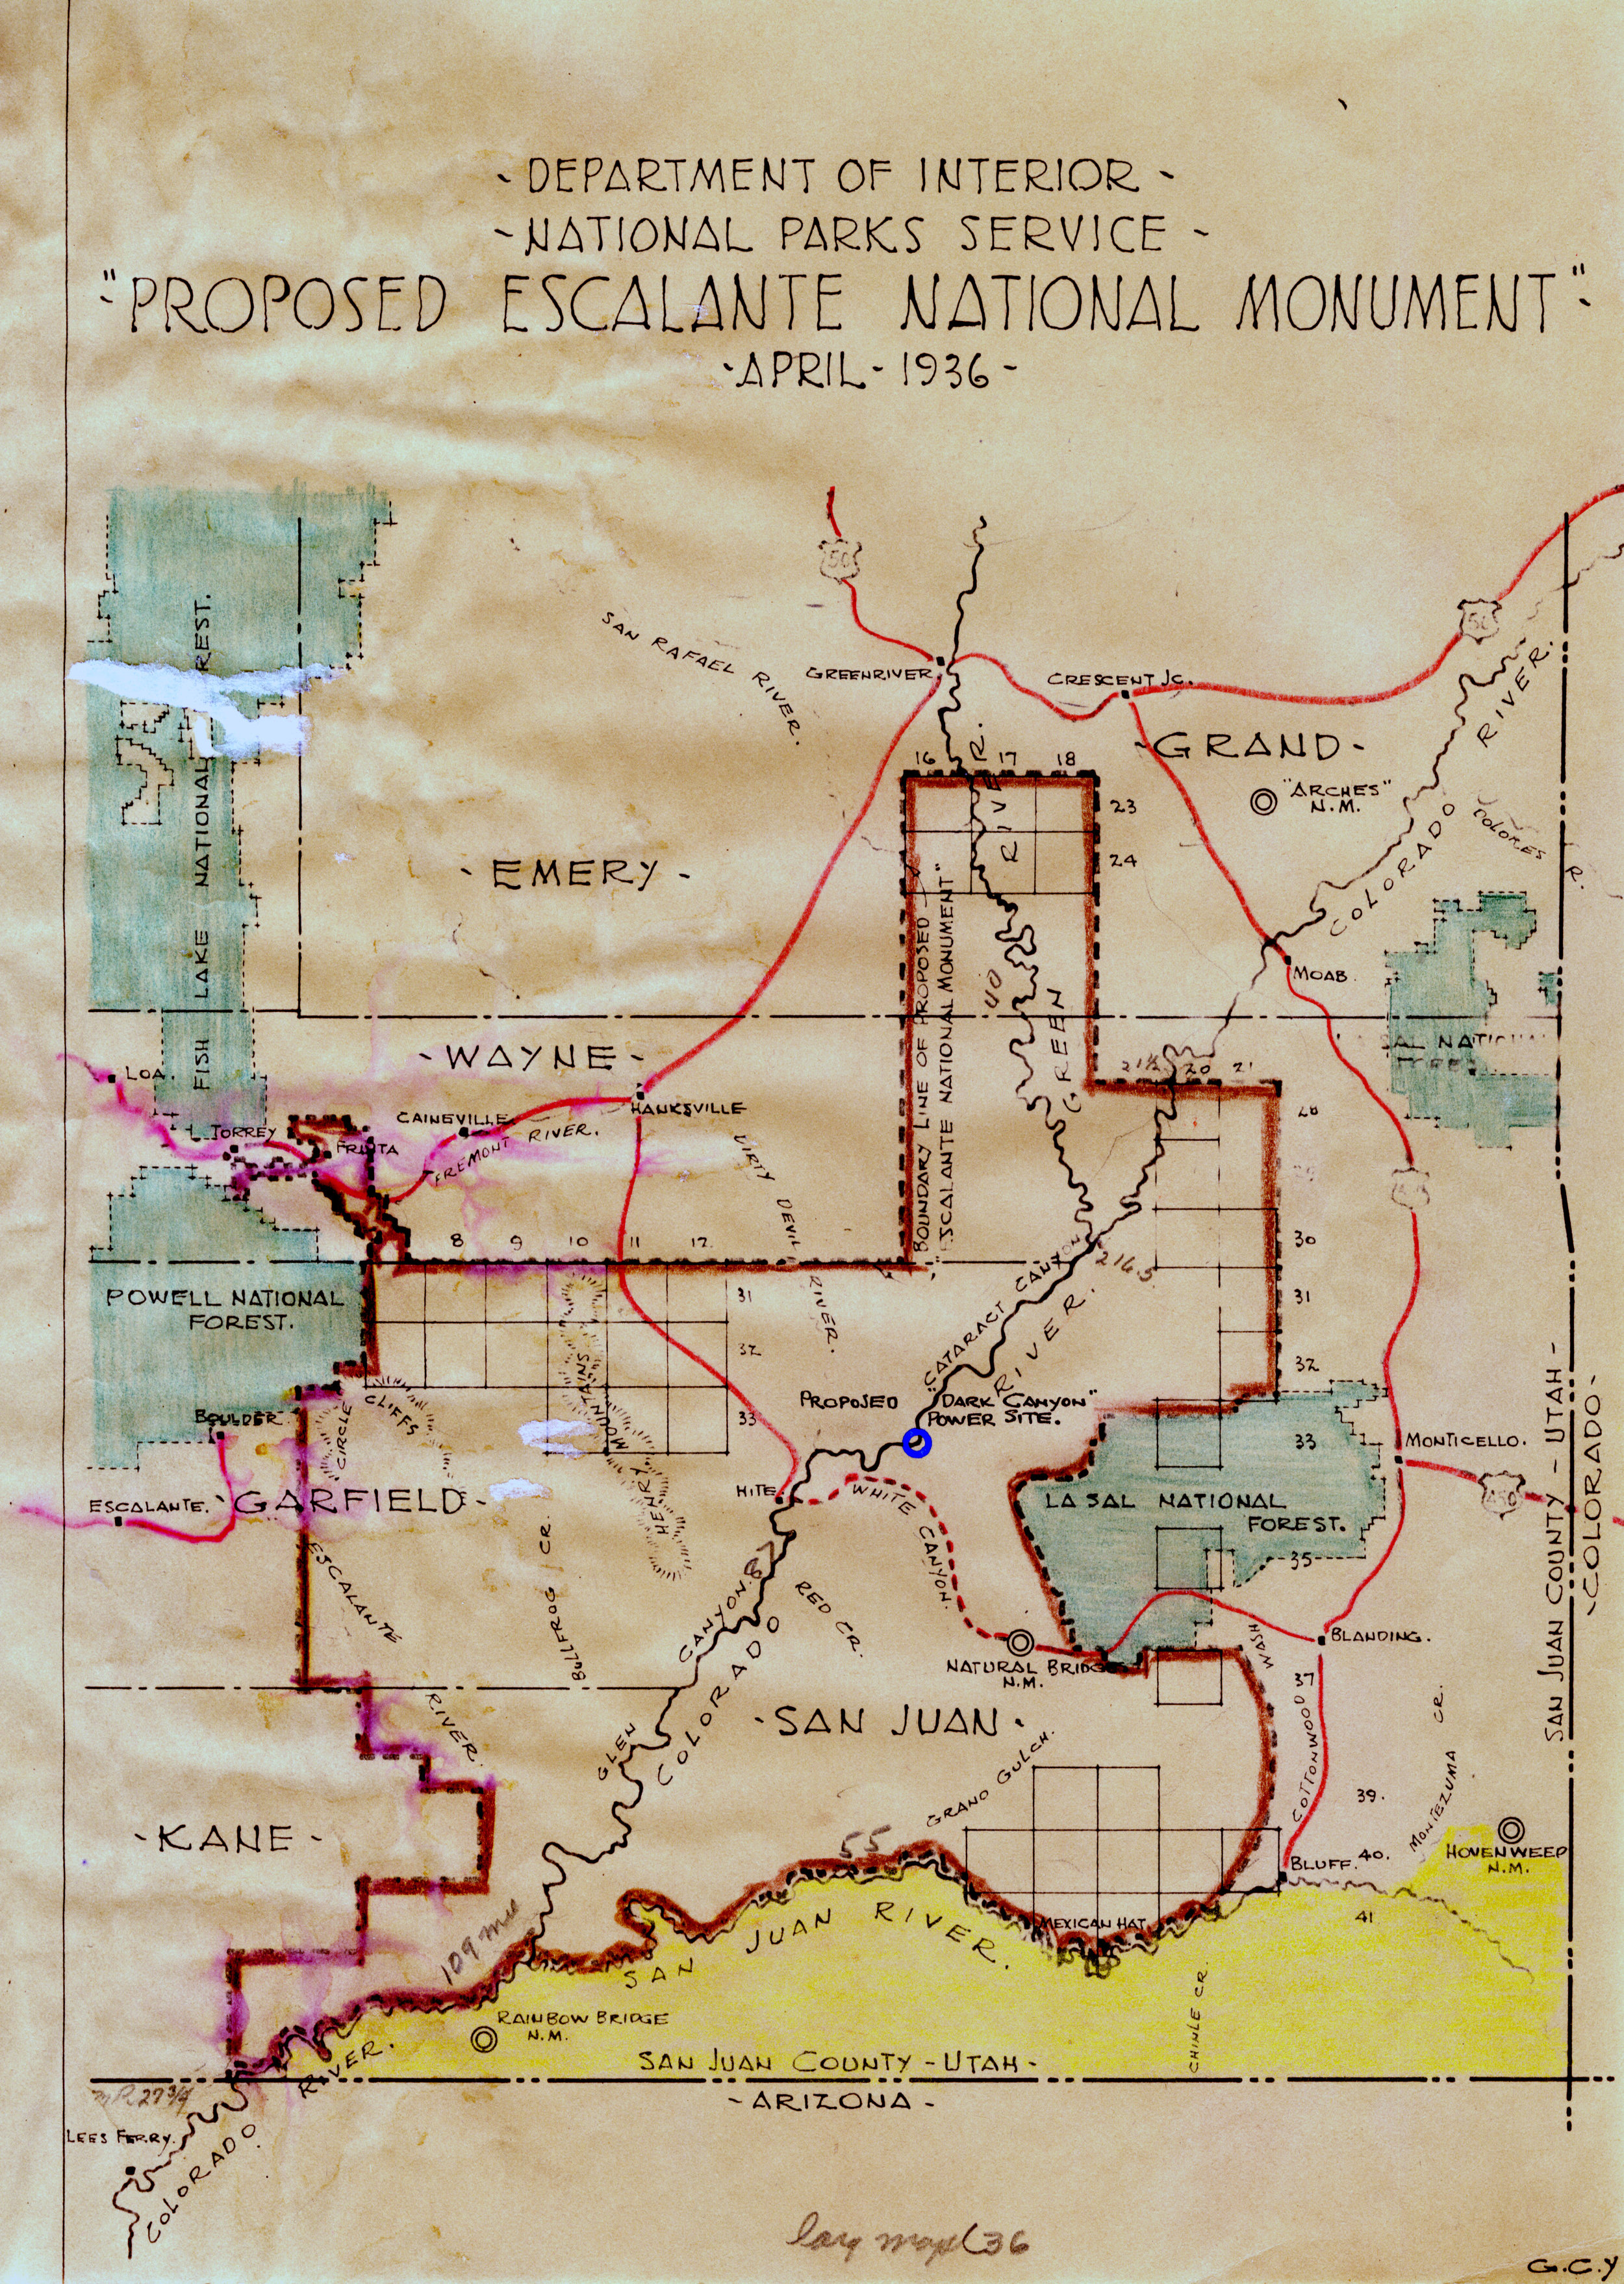 1936 MAP OF THE PROPOSED ESCALANTE NATIONAL MONUMENT (SERIES 22028).